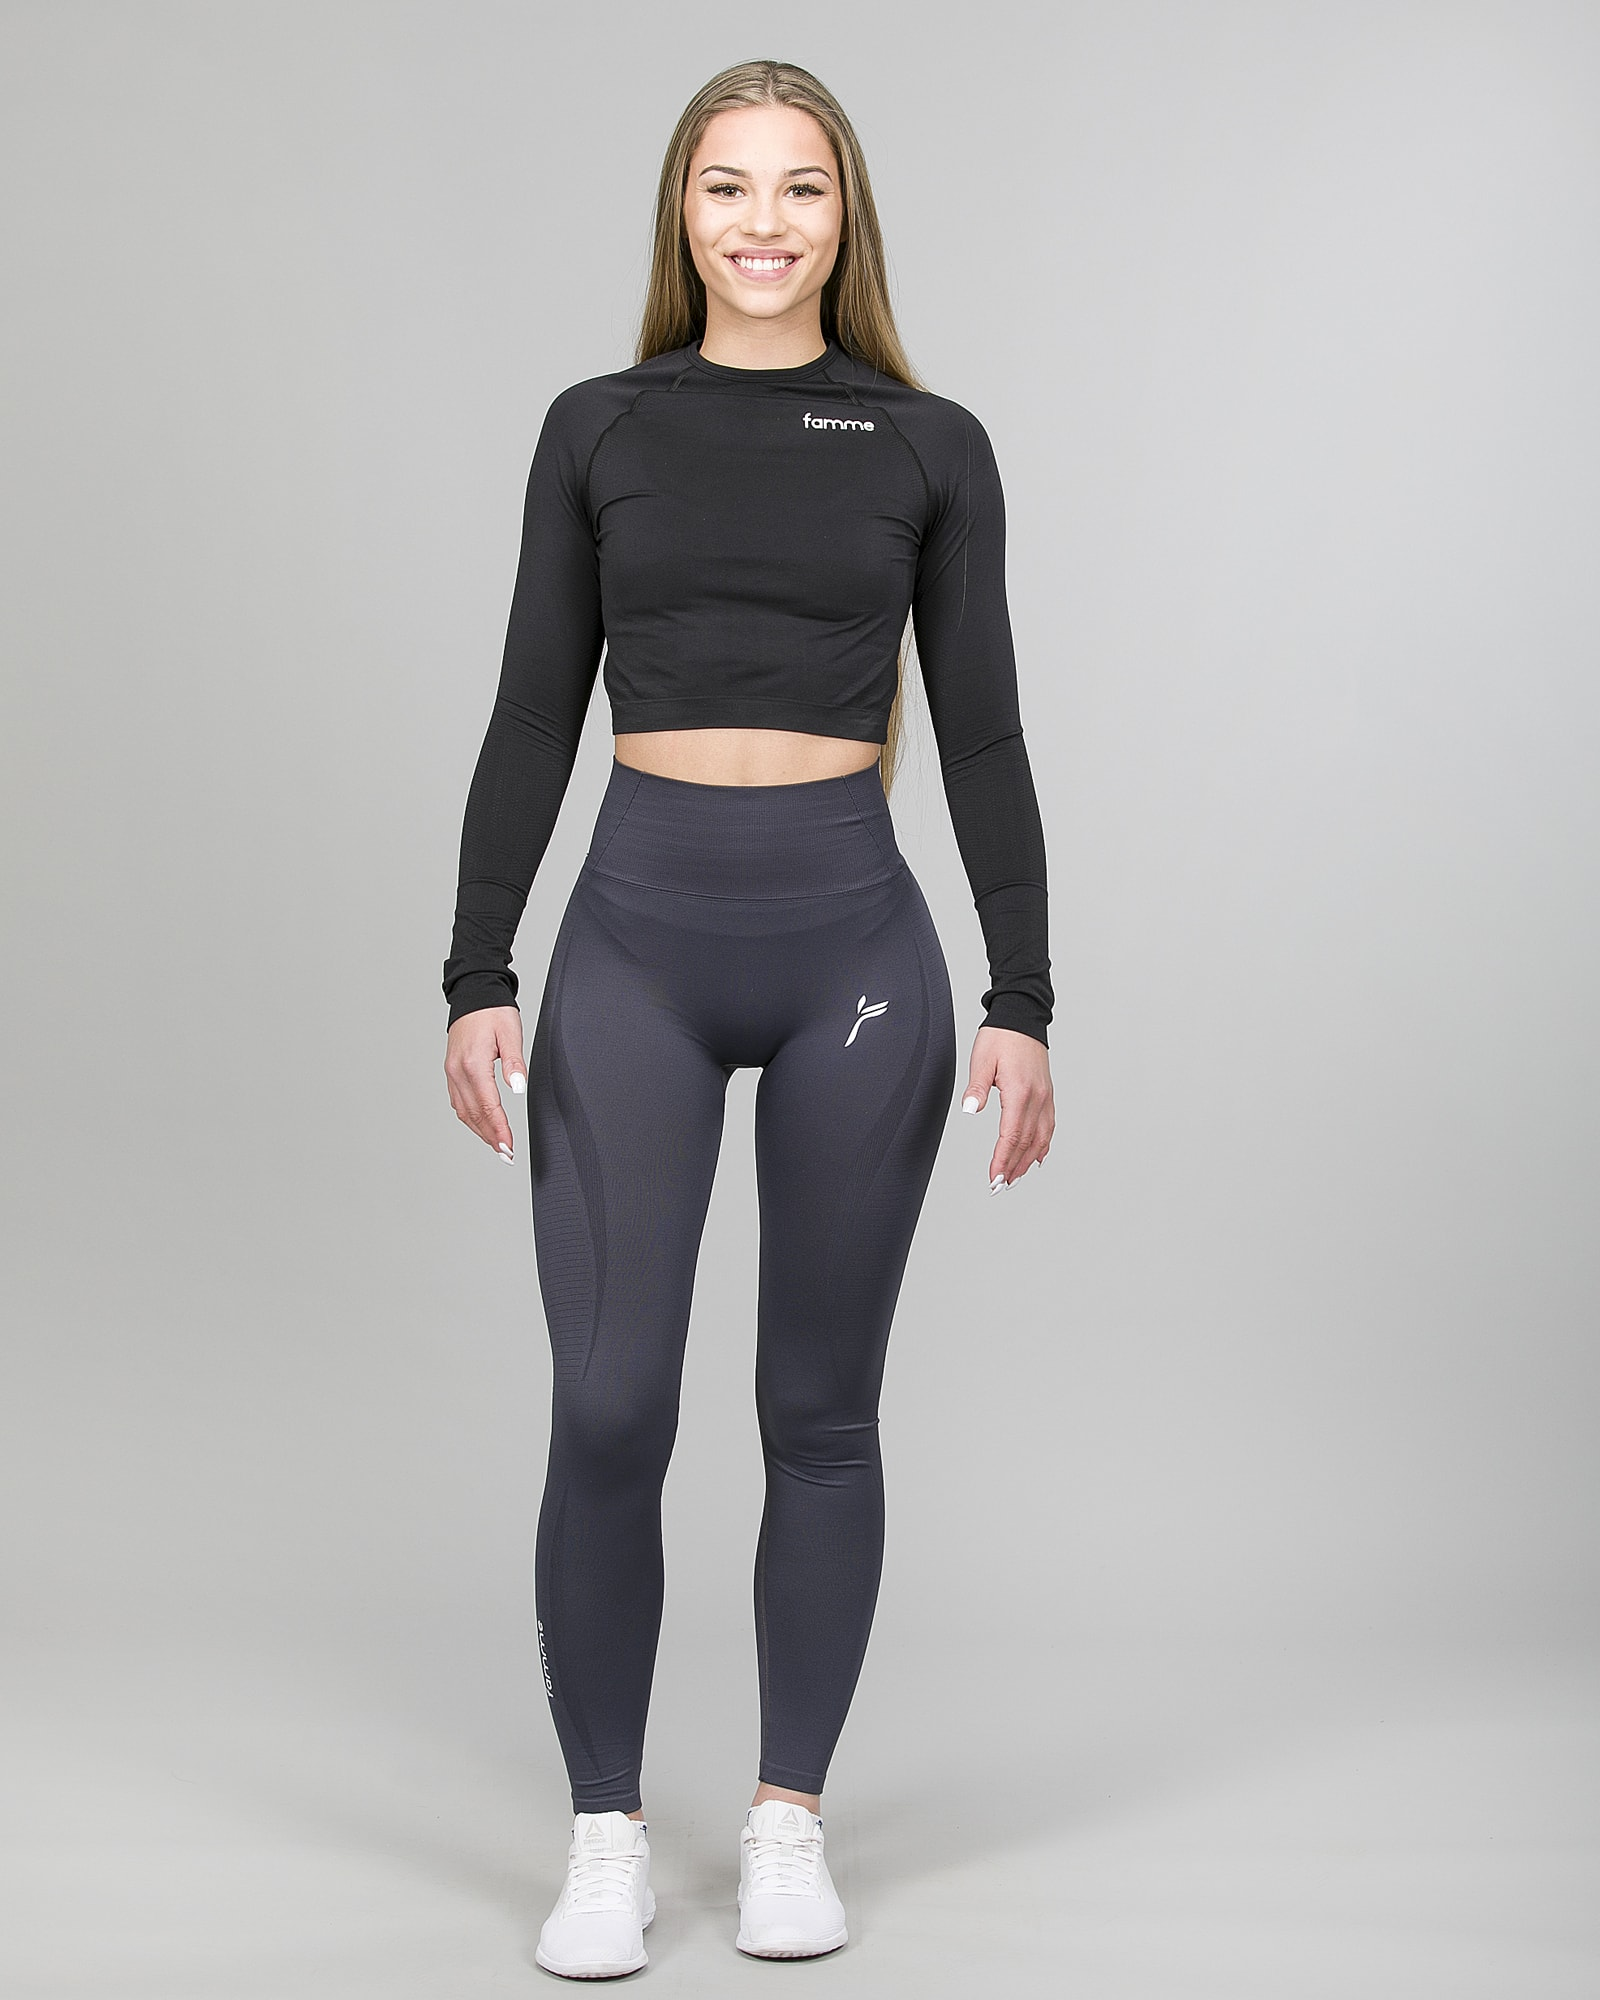 Famme Ocean Crop Top - Black ocls-bk and Vortex Leggings - Dark Grey vgwk.dg f